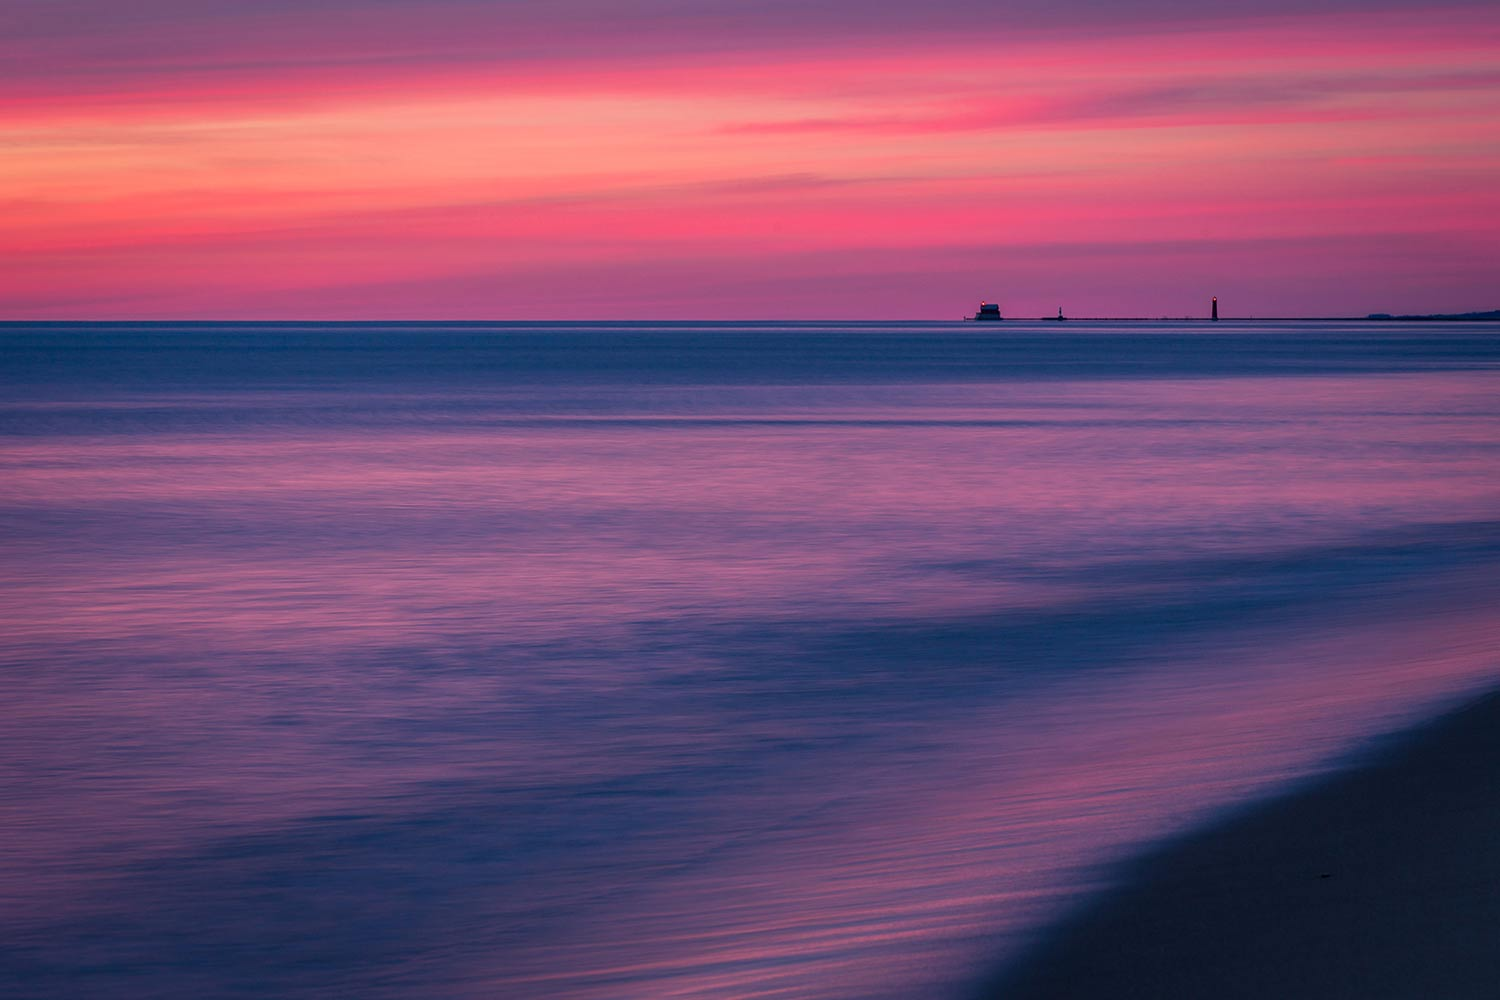 Pastel colors reflecting on the waters of Lake Michigan, with the Grand Haven light house in the distance.